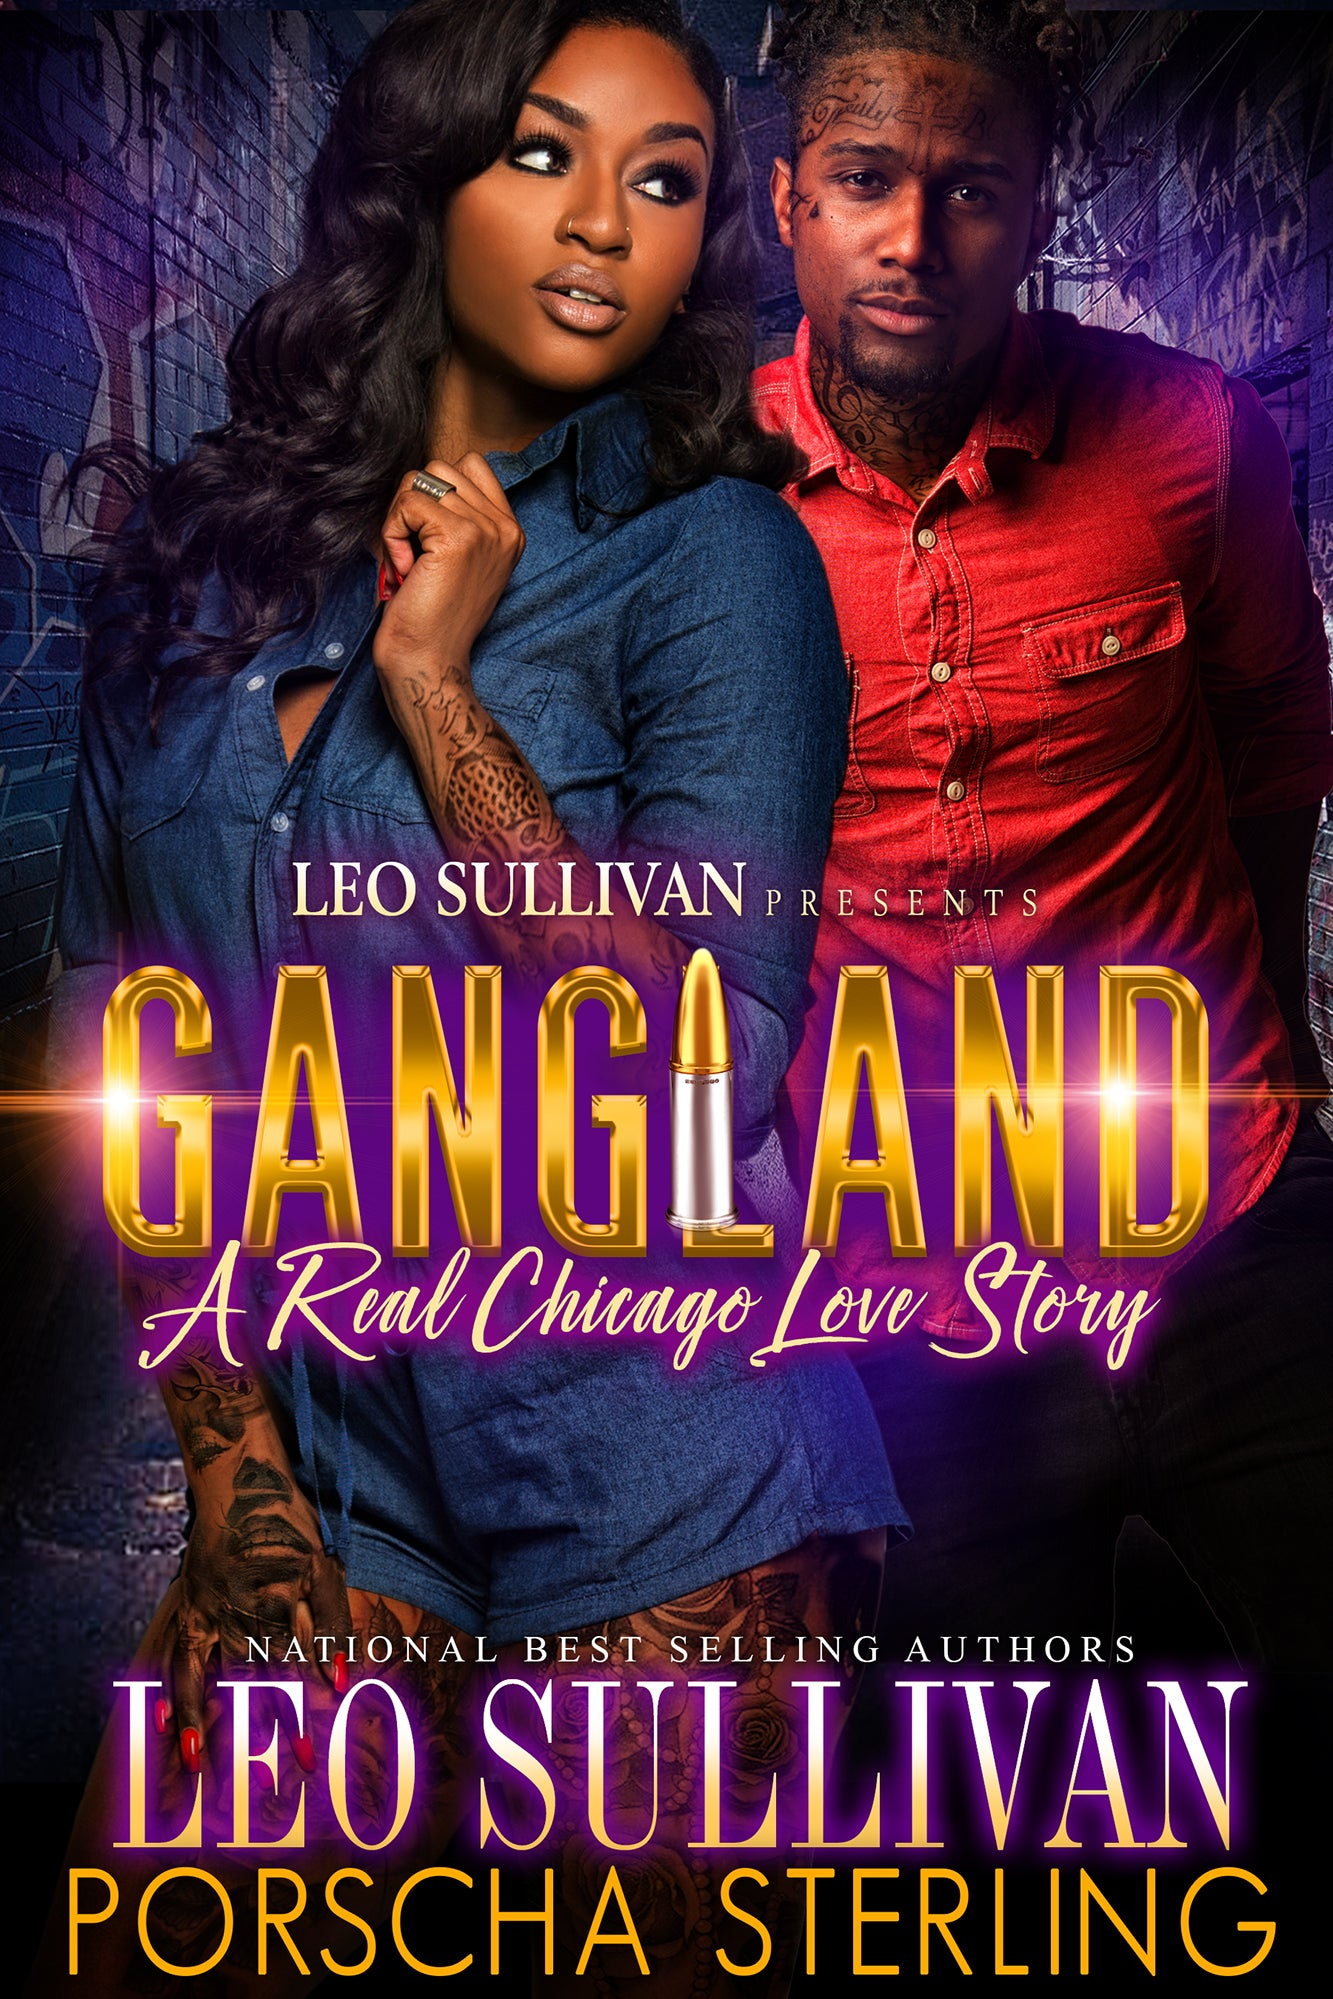 Gangland: A Real Chicago Love Story (eBook)